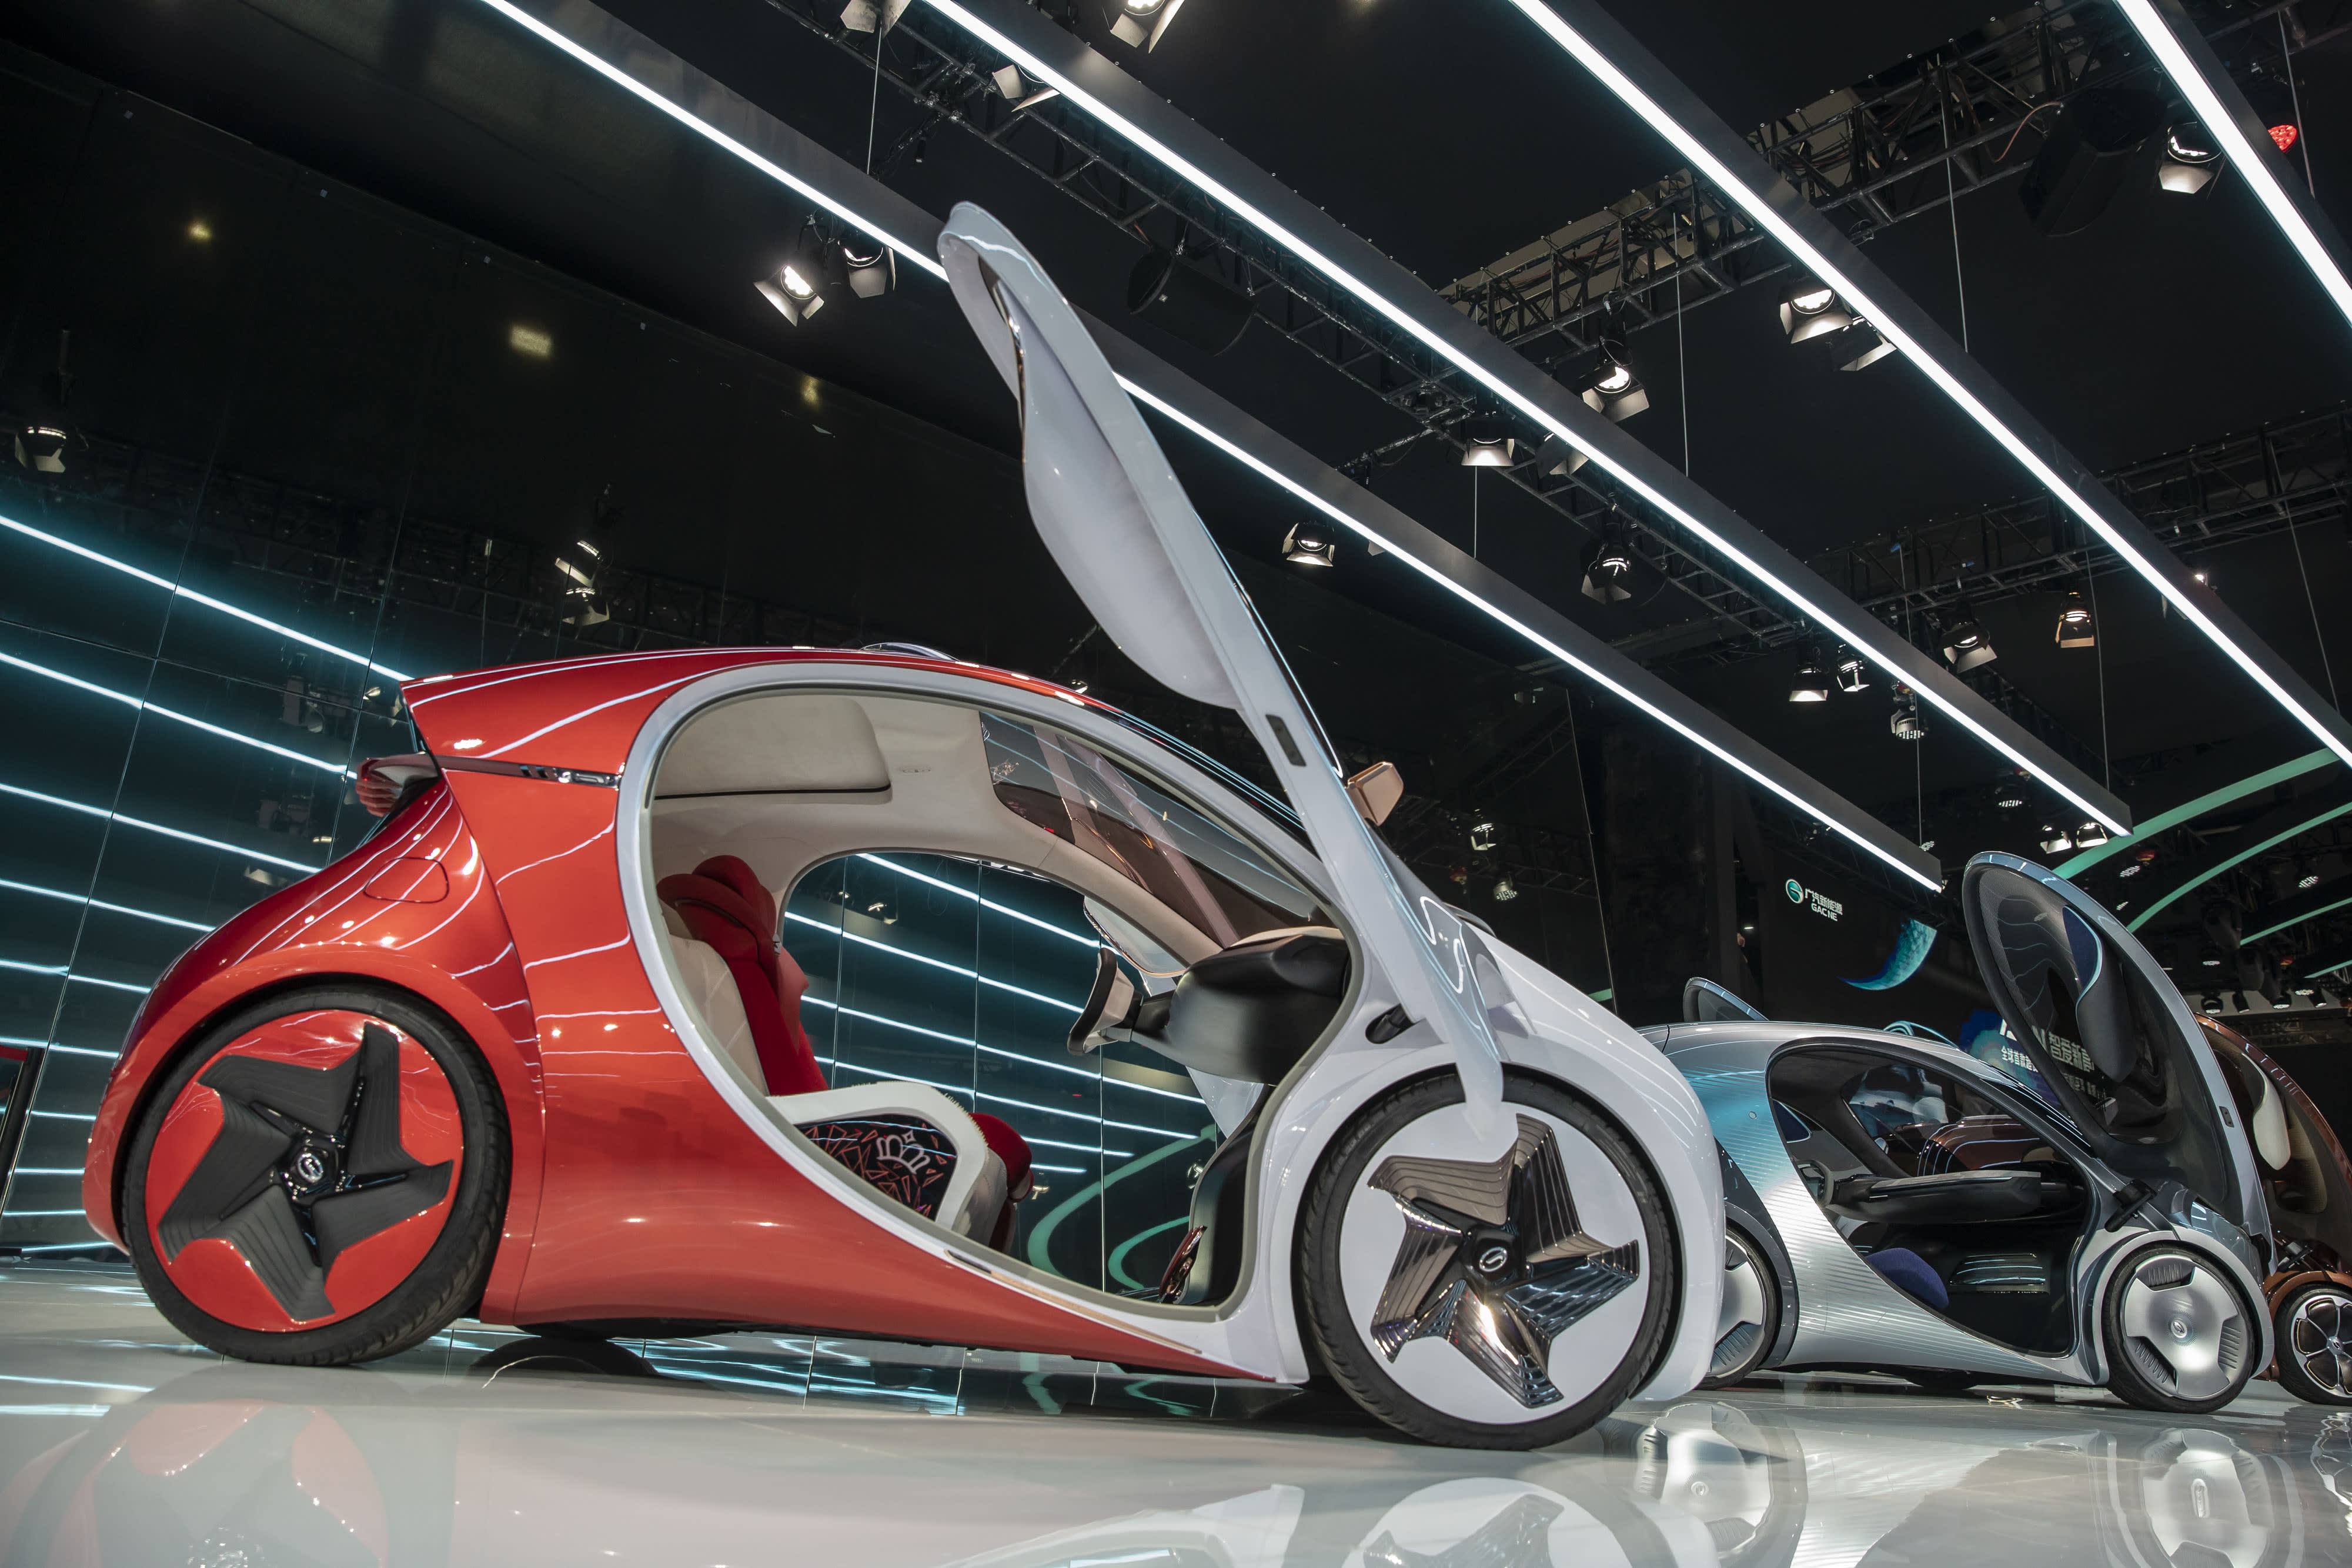 Guangzhou Automobile Group Co.'s (GAC) Trumpchi concept vehicles are displayed at the Guangzhou International Automobile Exhibition in Guangzhou, China, on Friday, Nov. 16, 2018.